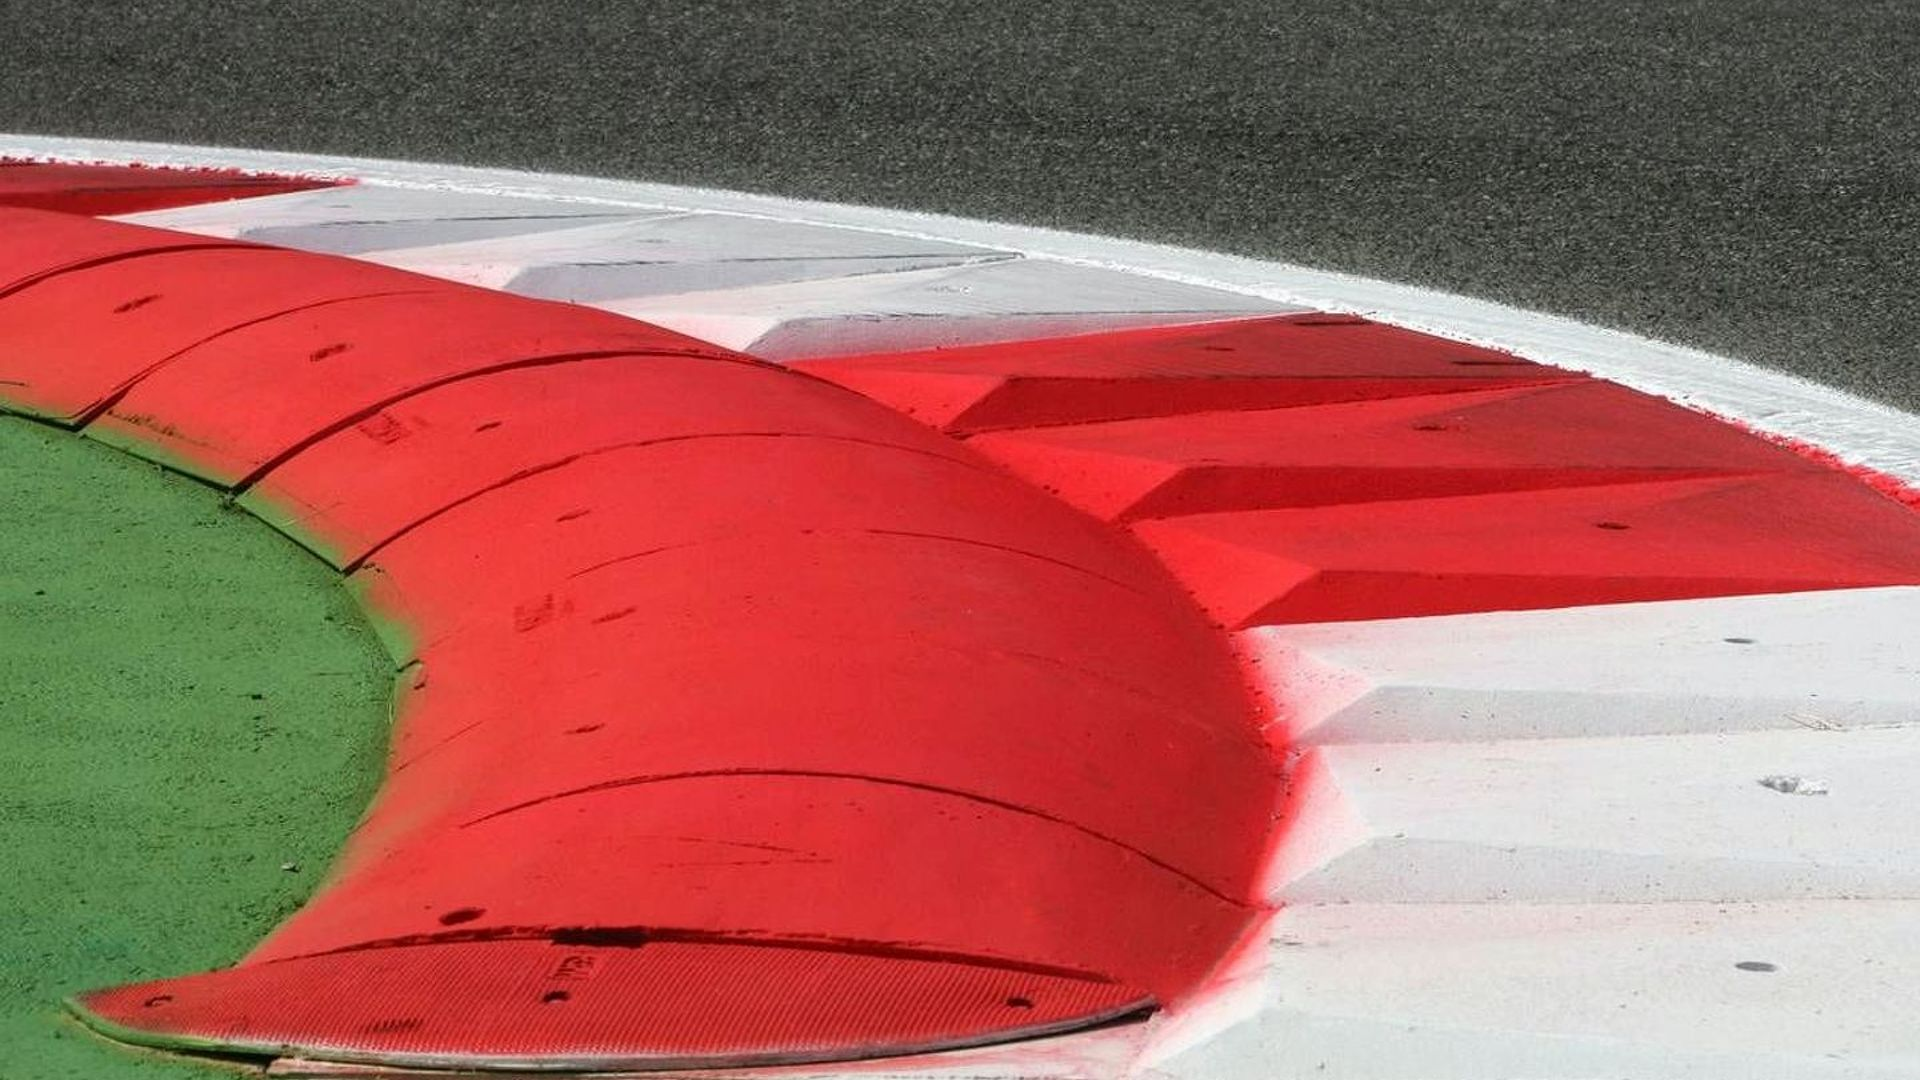 Kerb height lowered at Monza first chicane